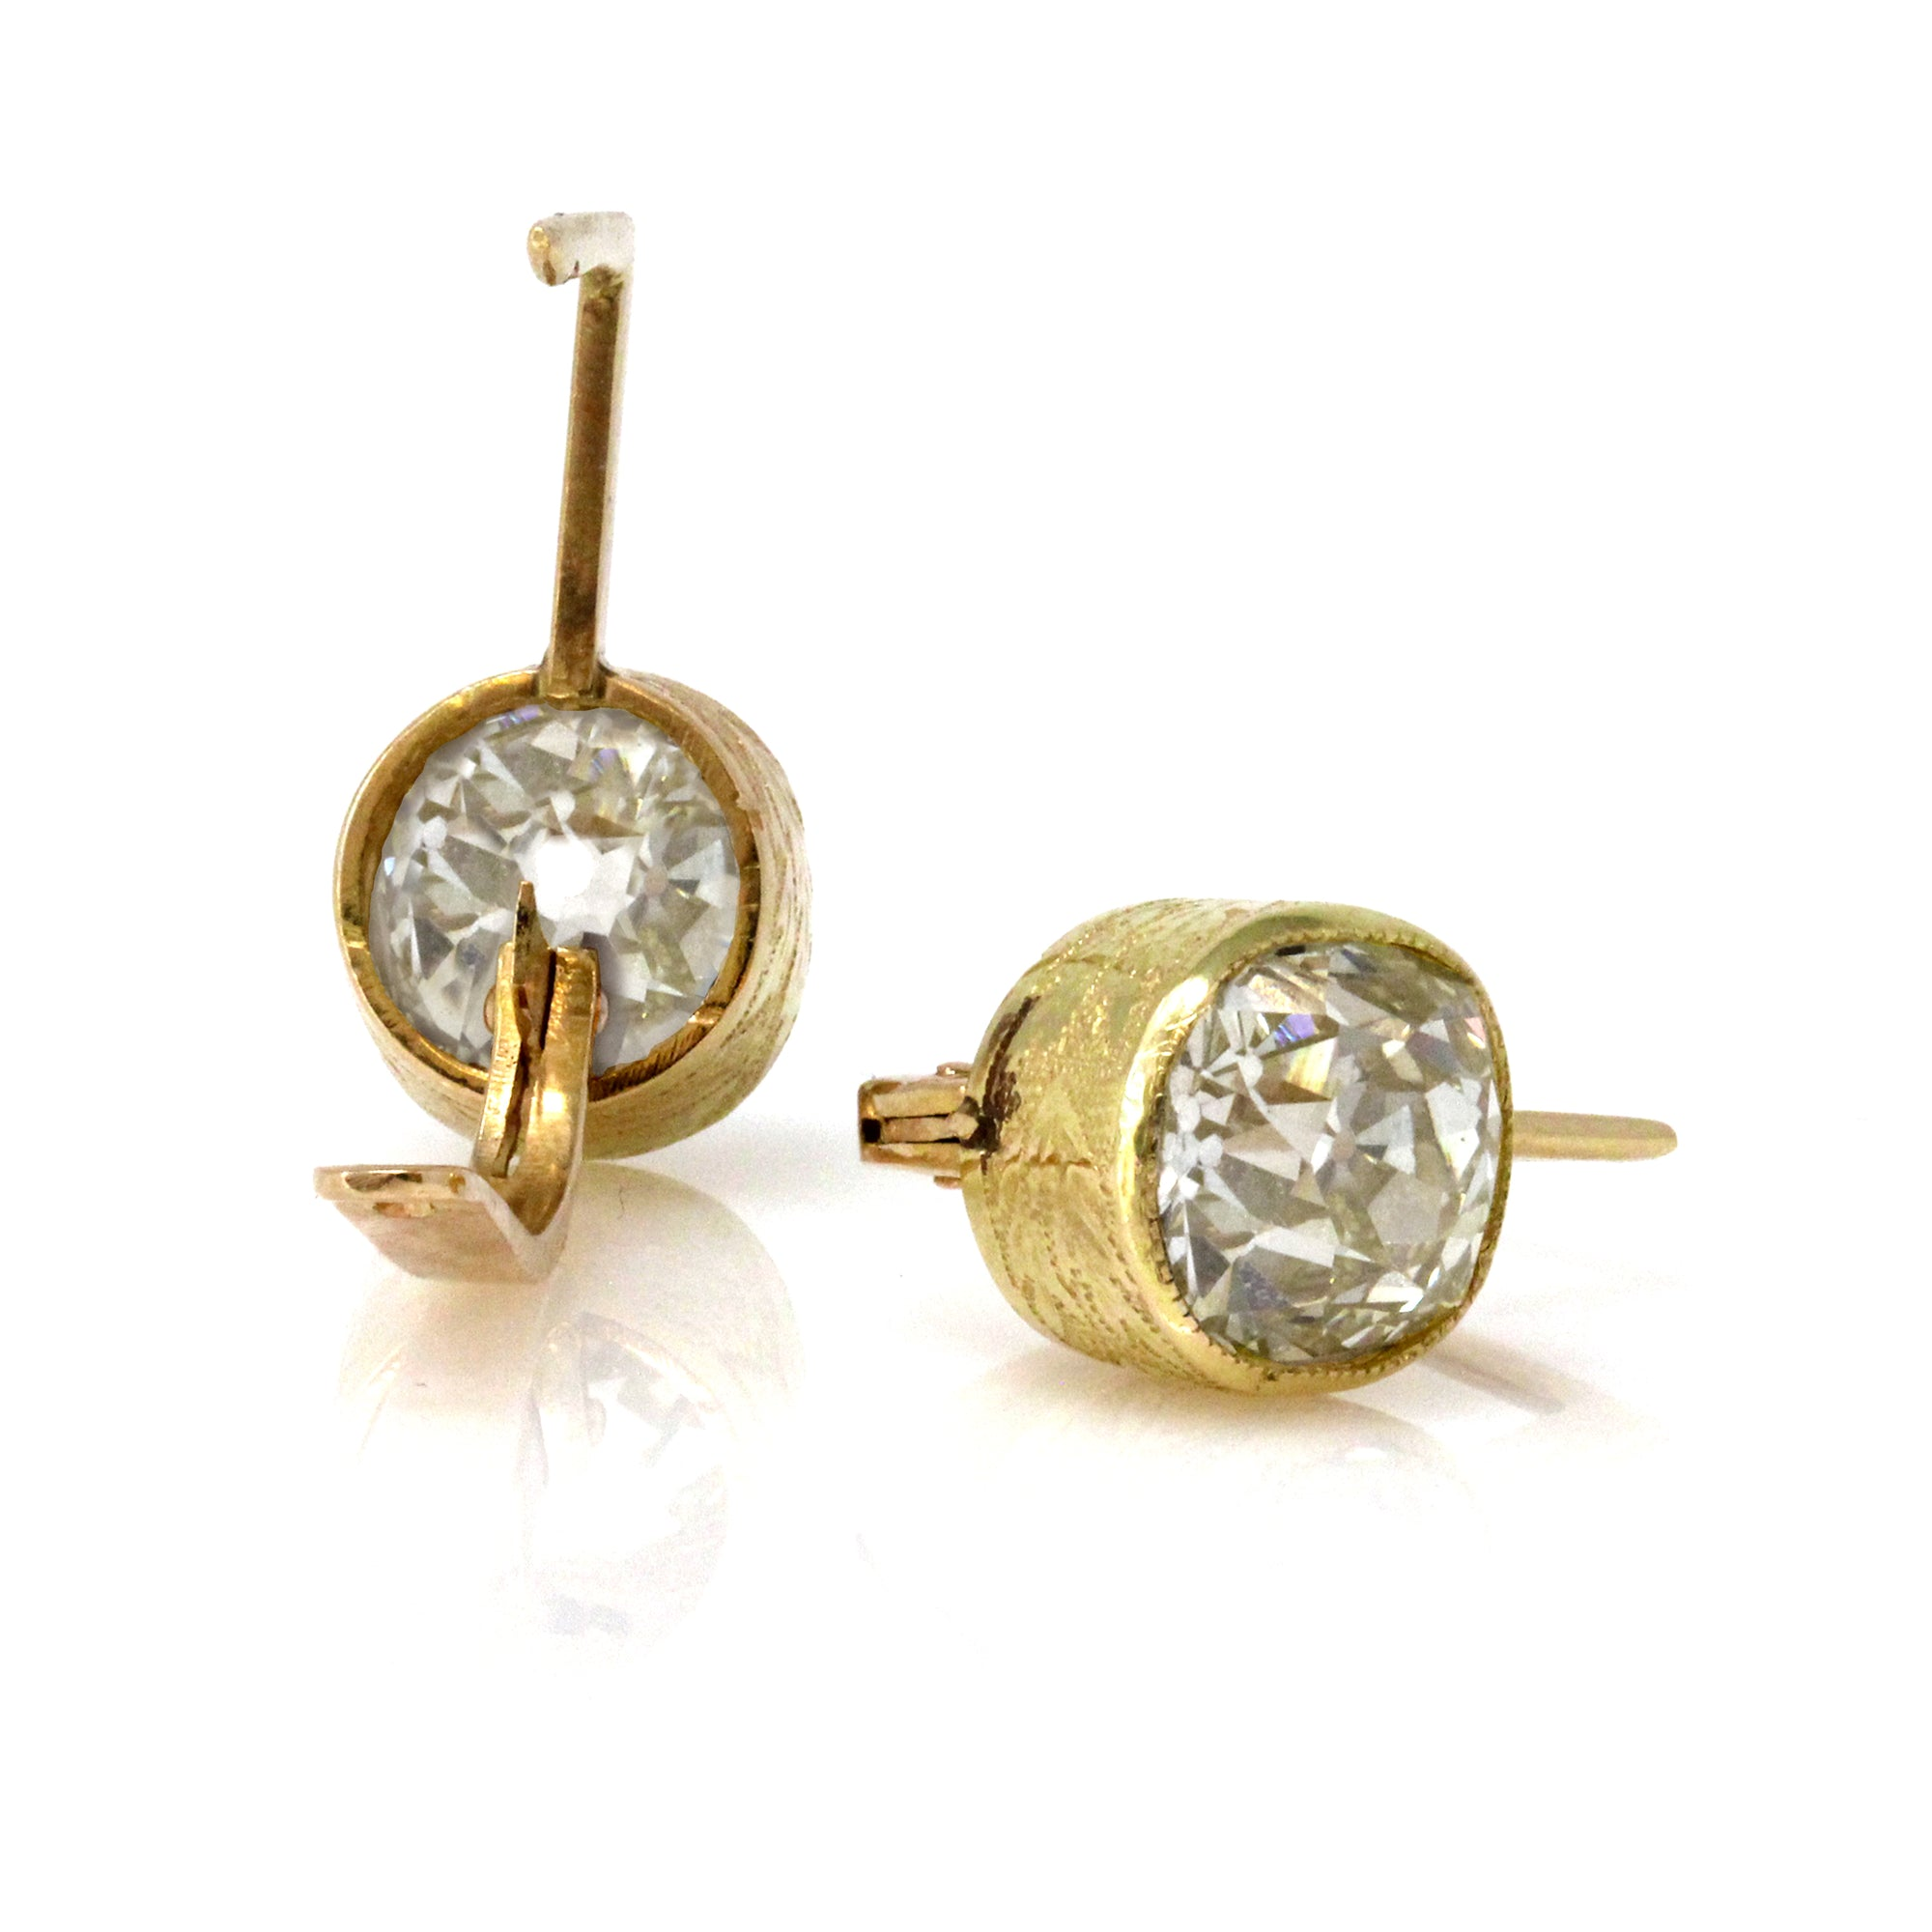 1940s Retro 5.50 Carat Old Cushion Cut Bezel Stud Earrings